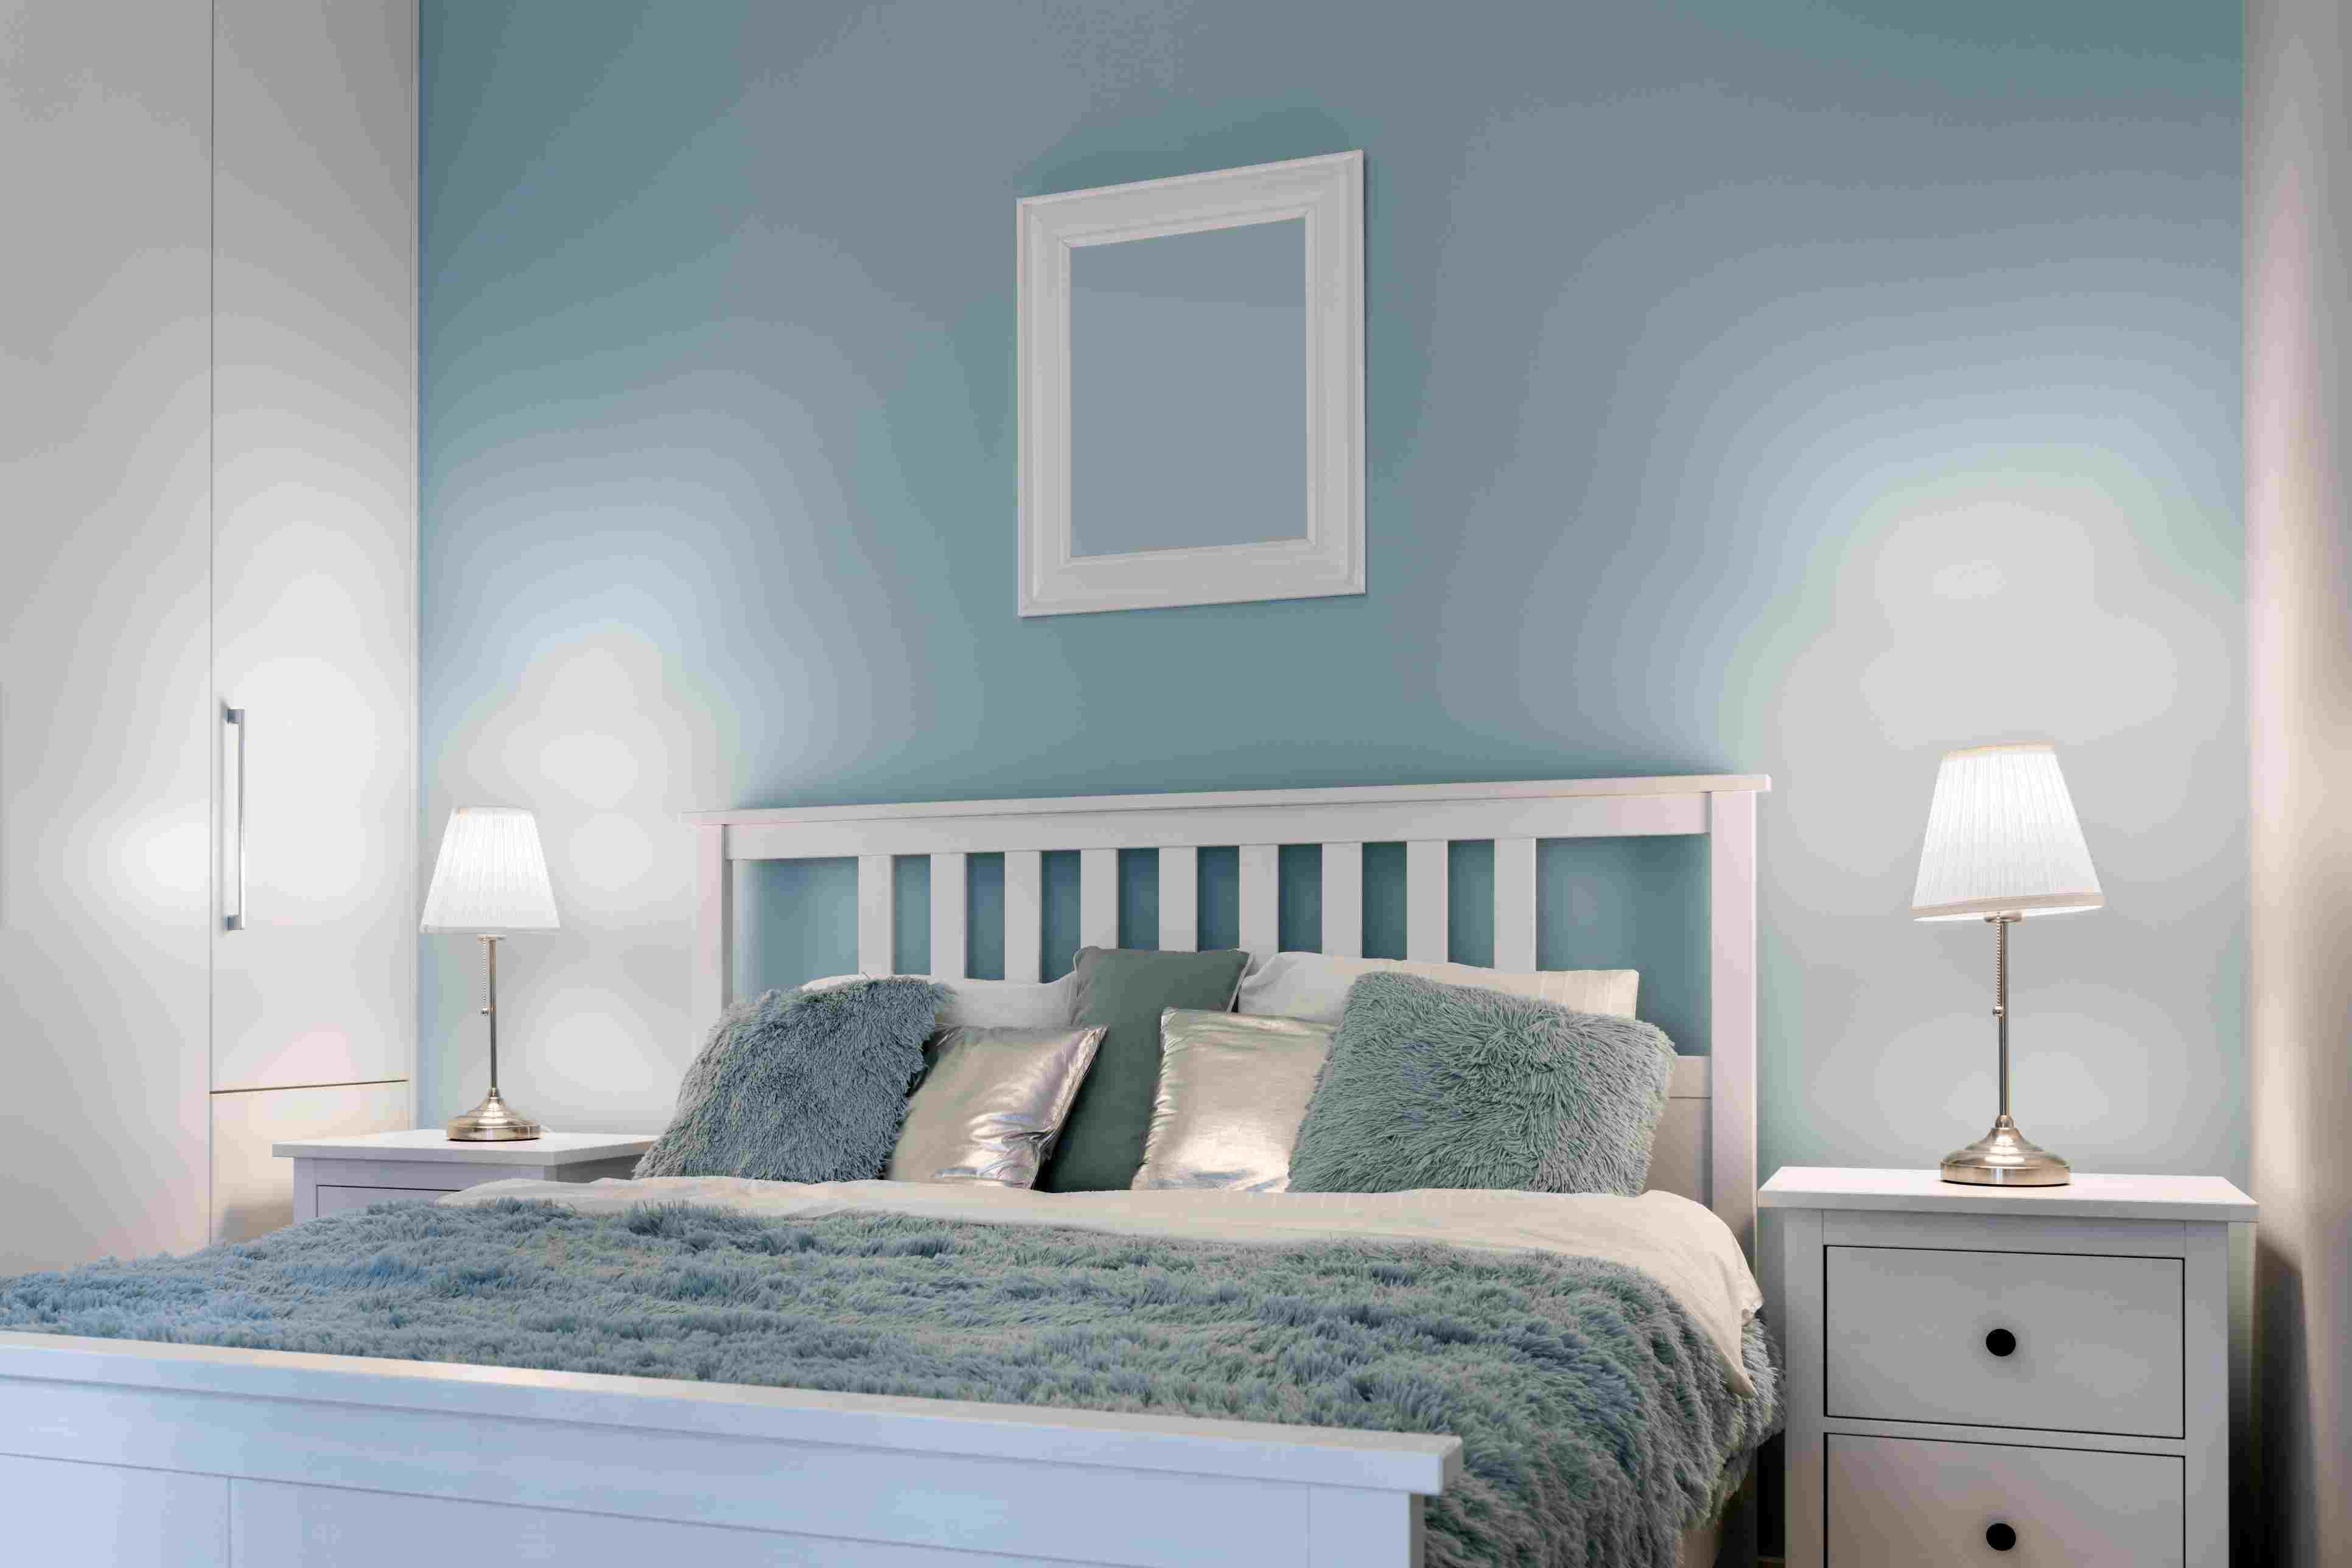 Stylish bedroom painted